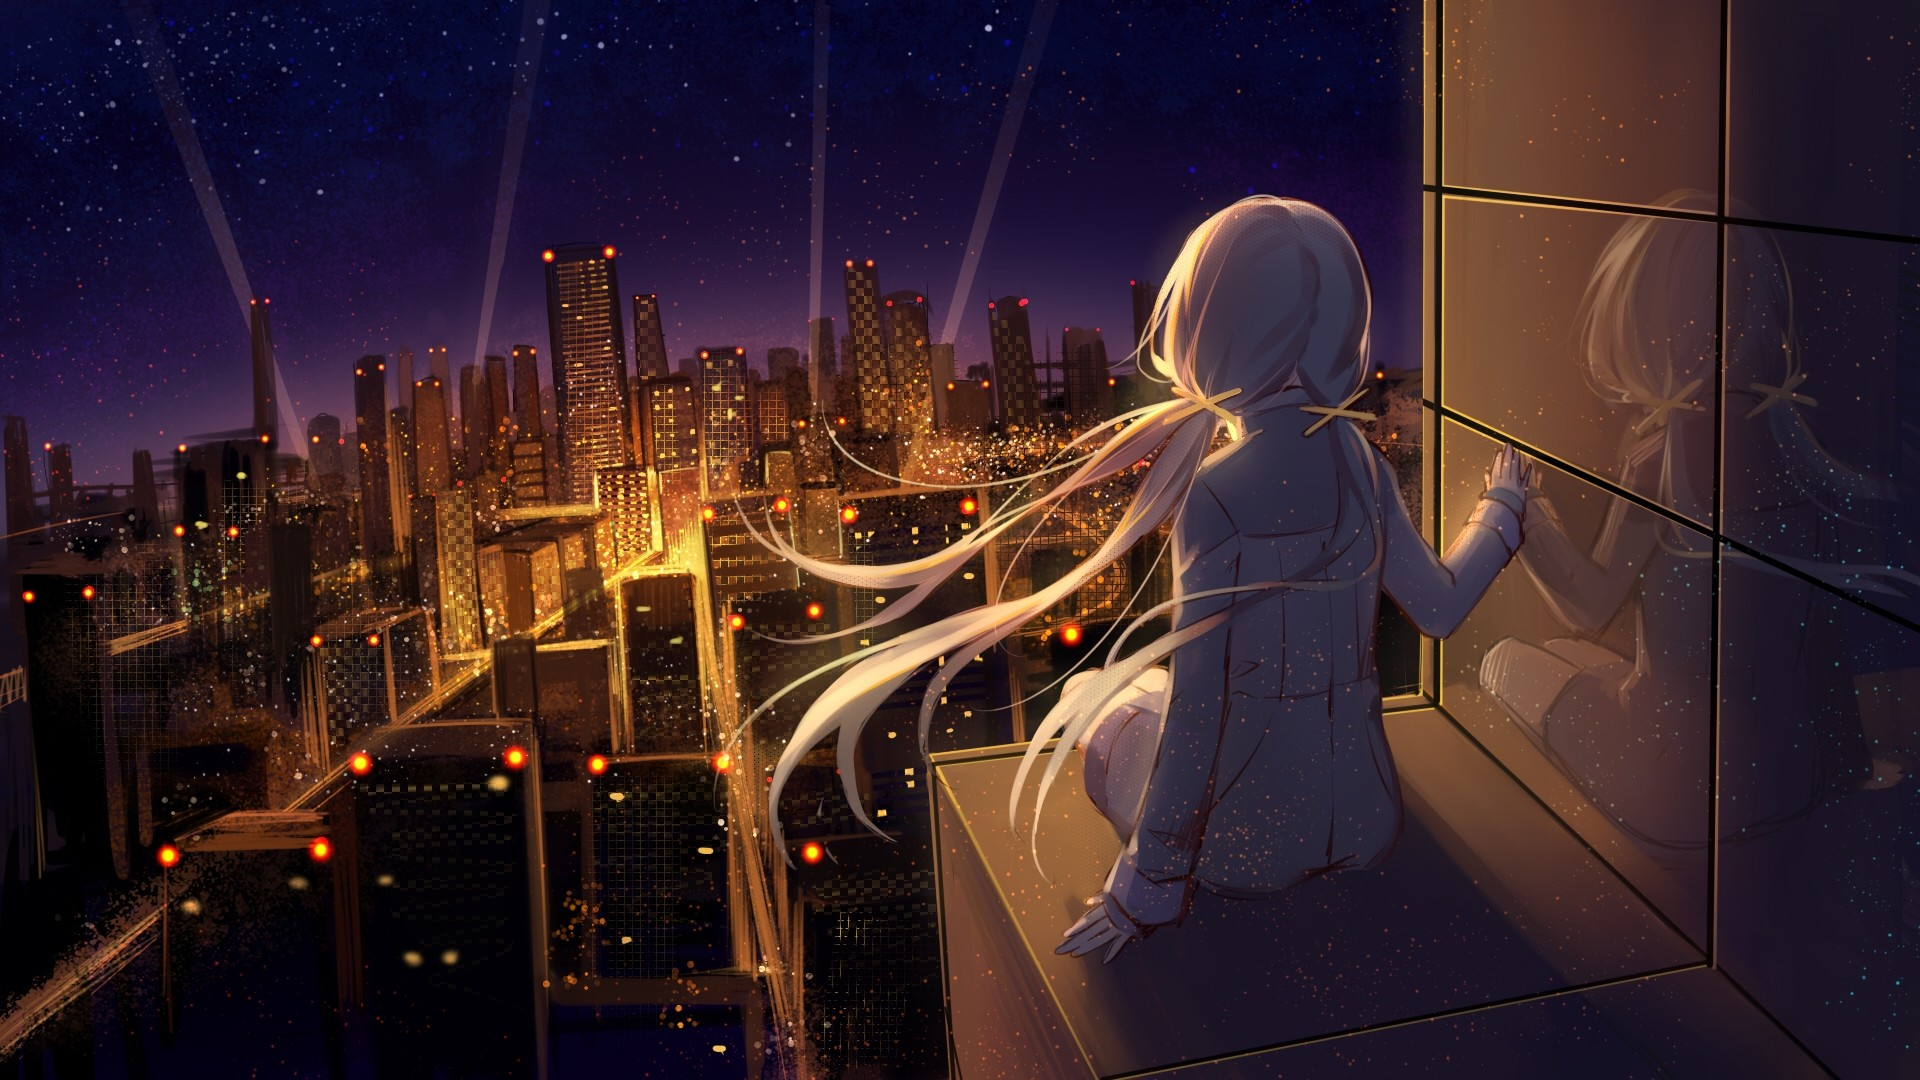 Night Anime Girl Image